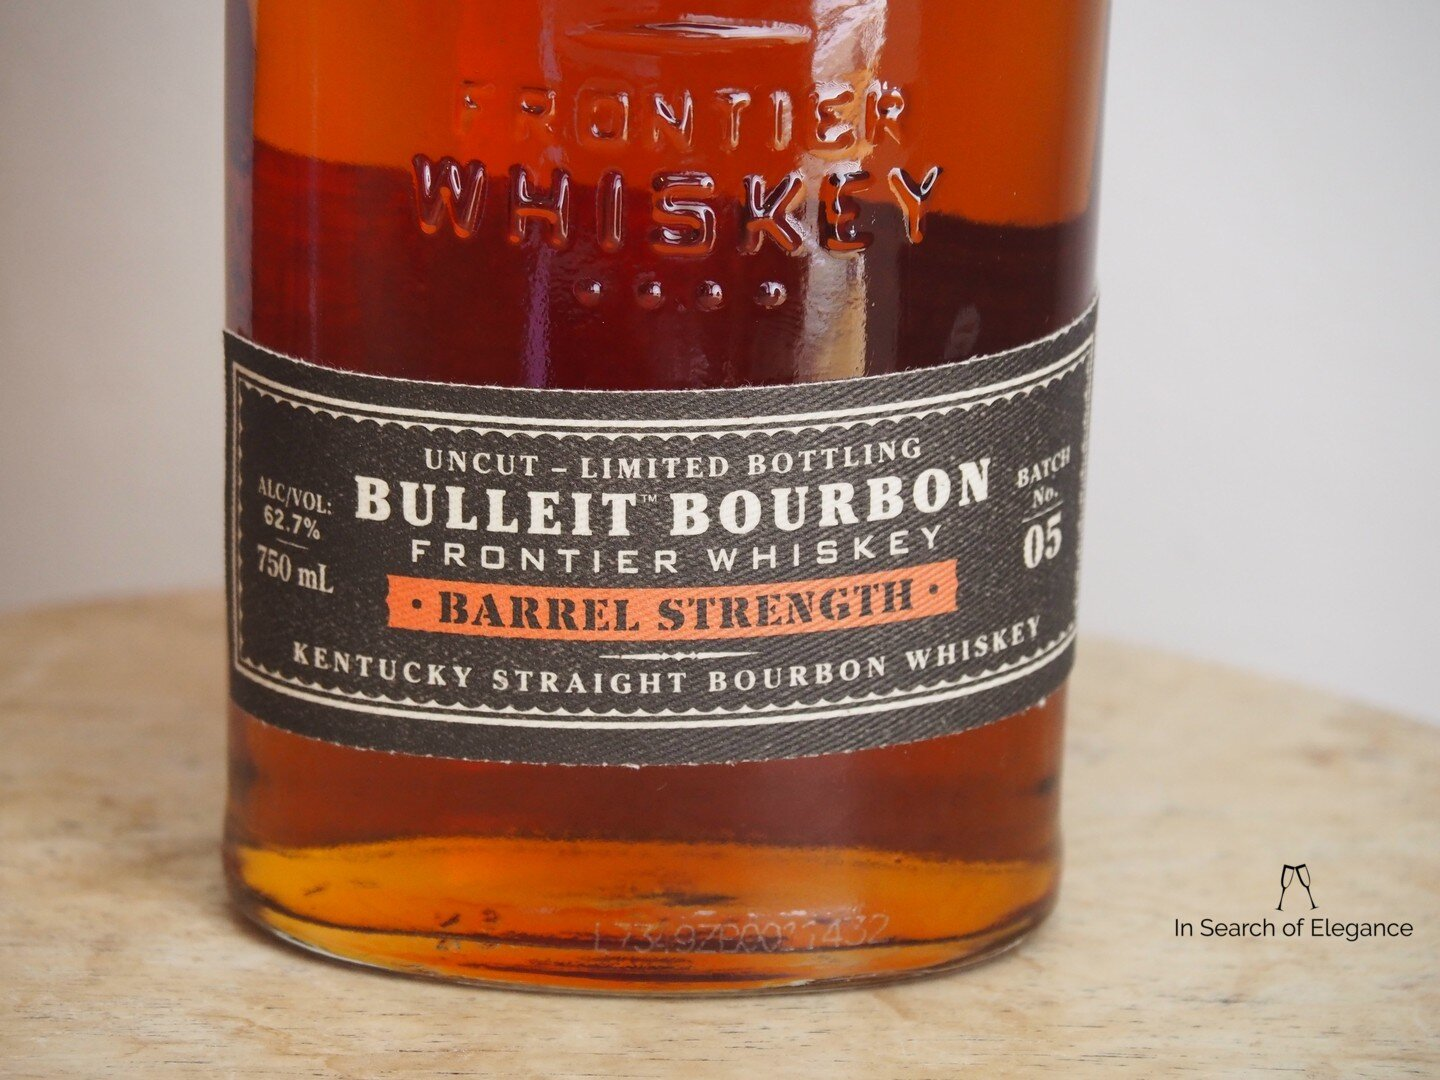 Thanks to Bulleit for the picture.